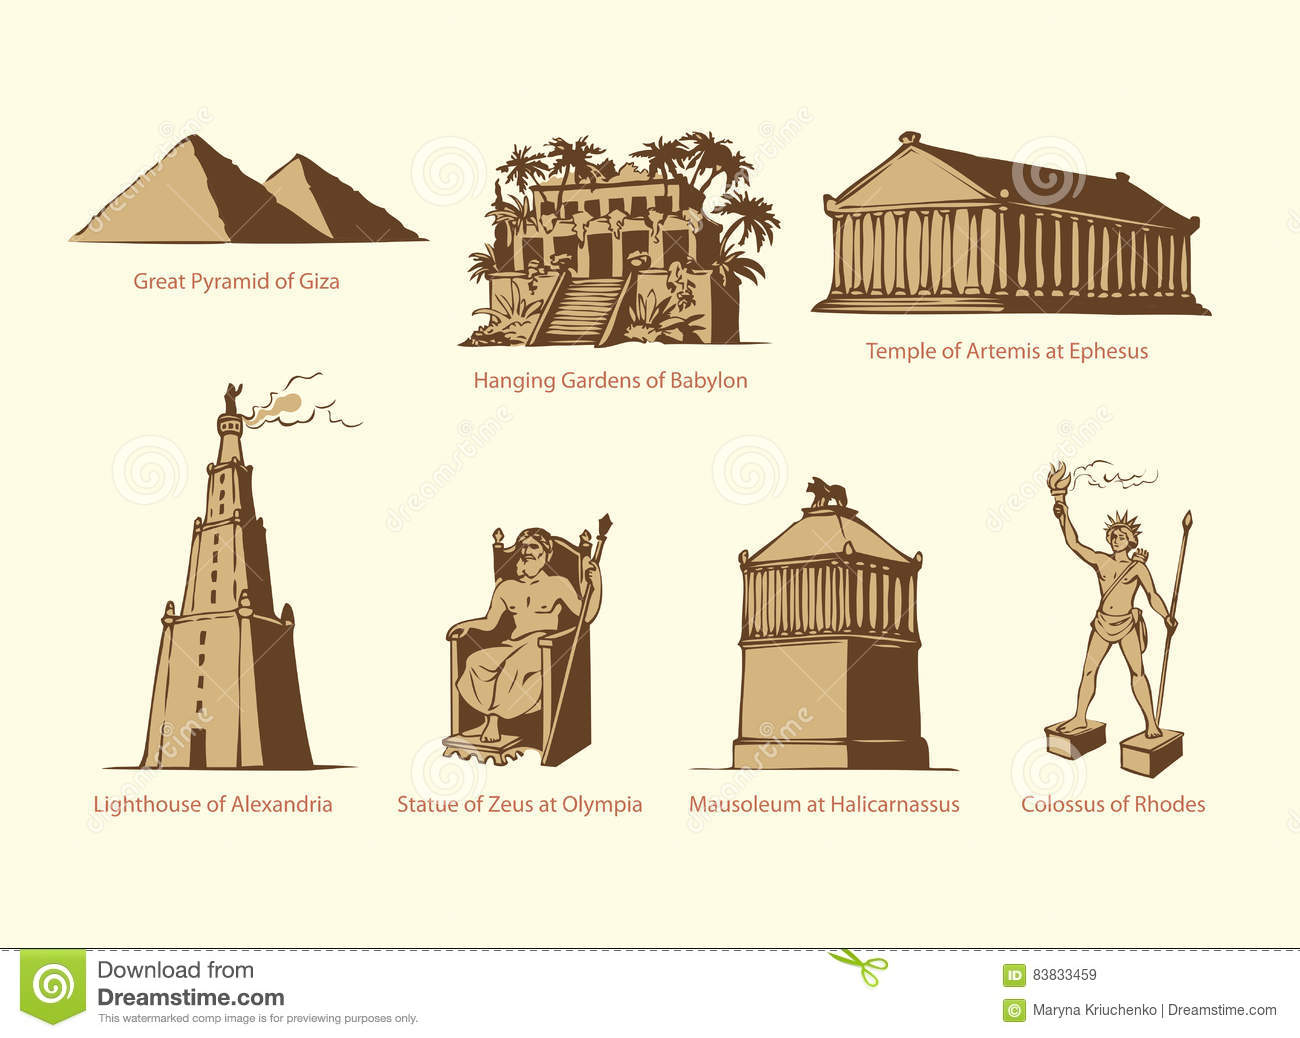 Seven wonders of the world images download